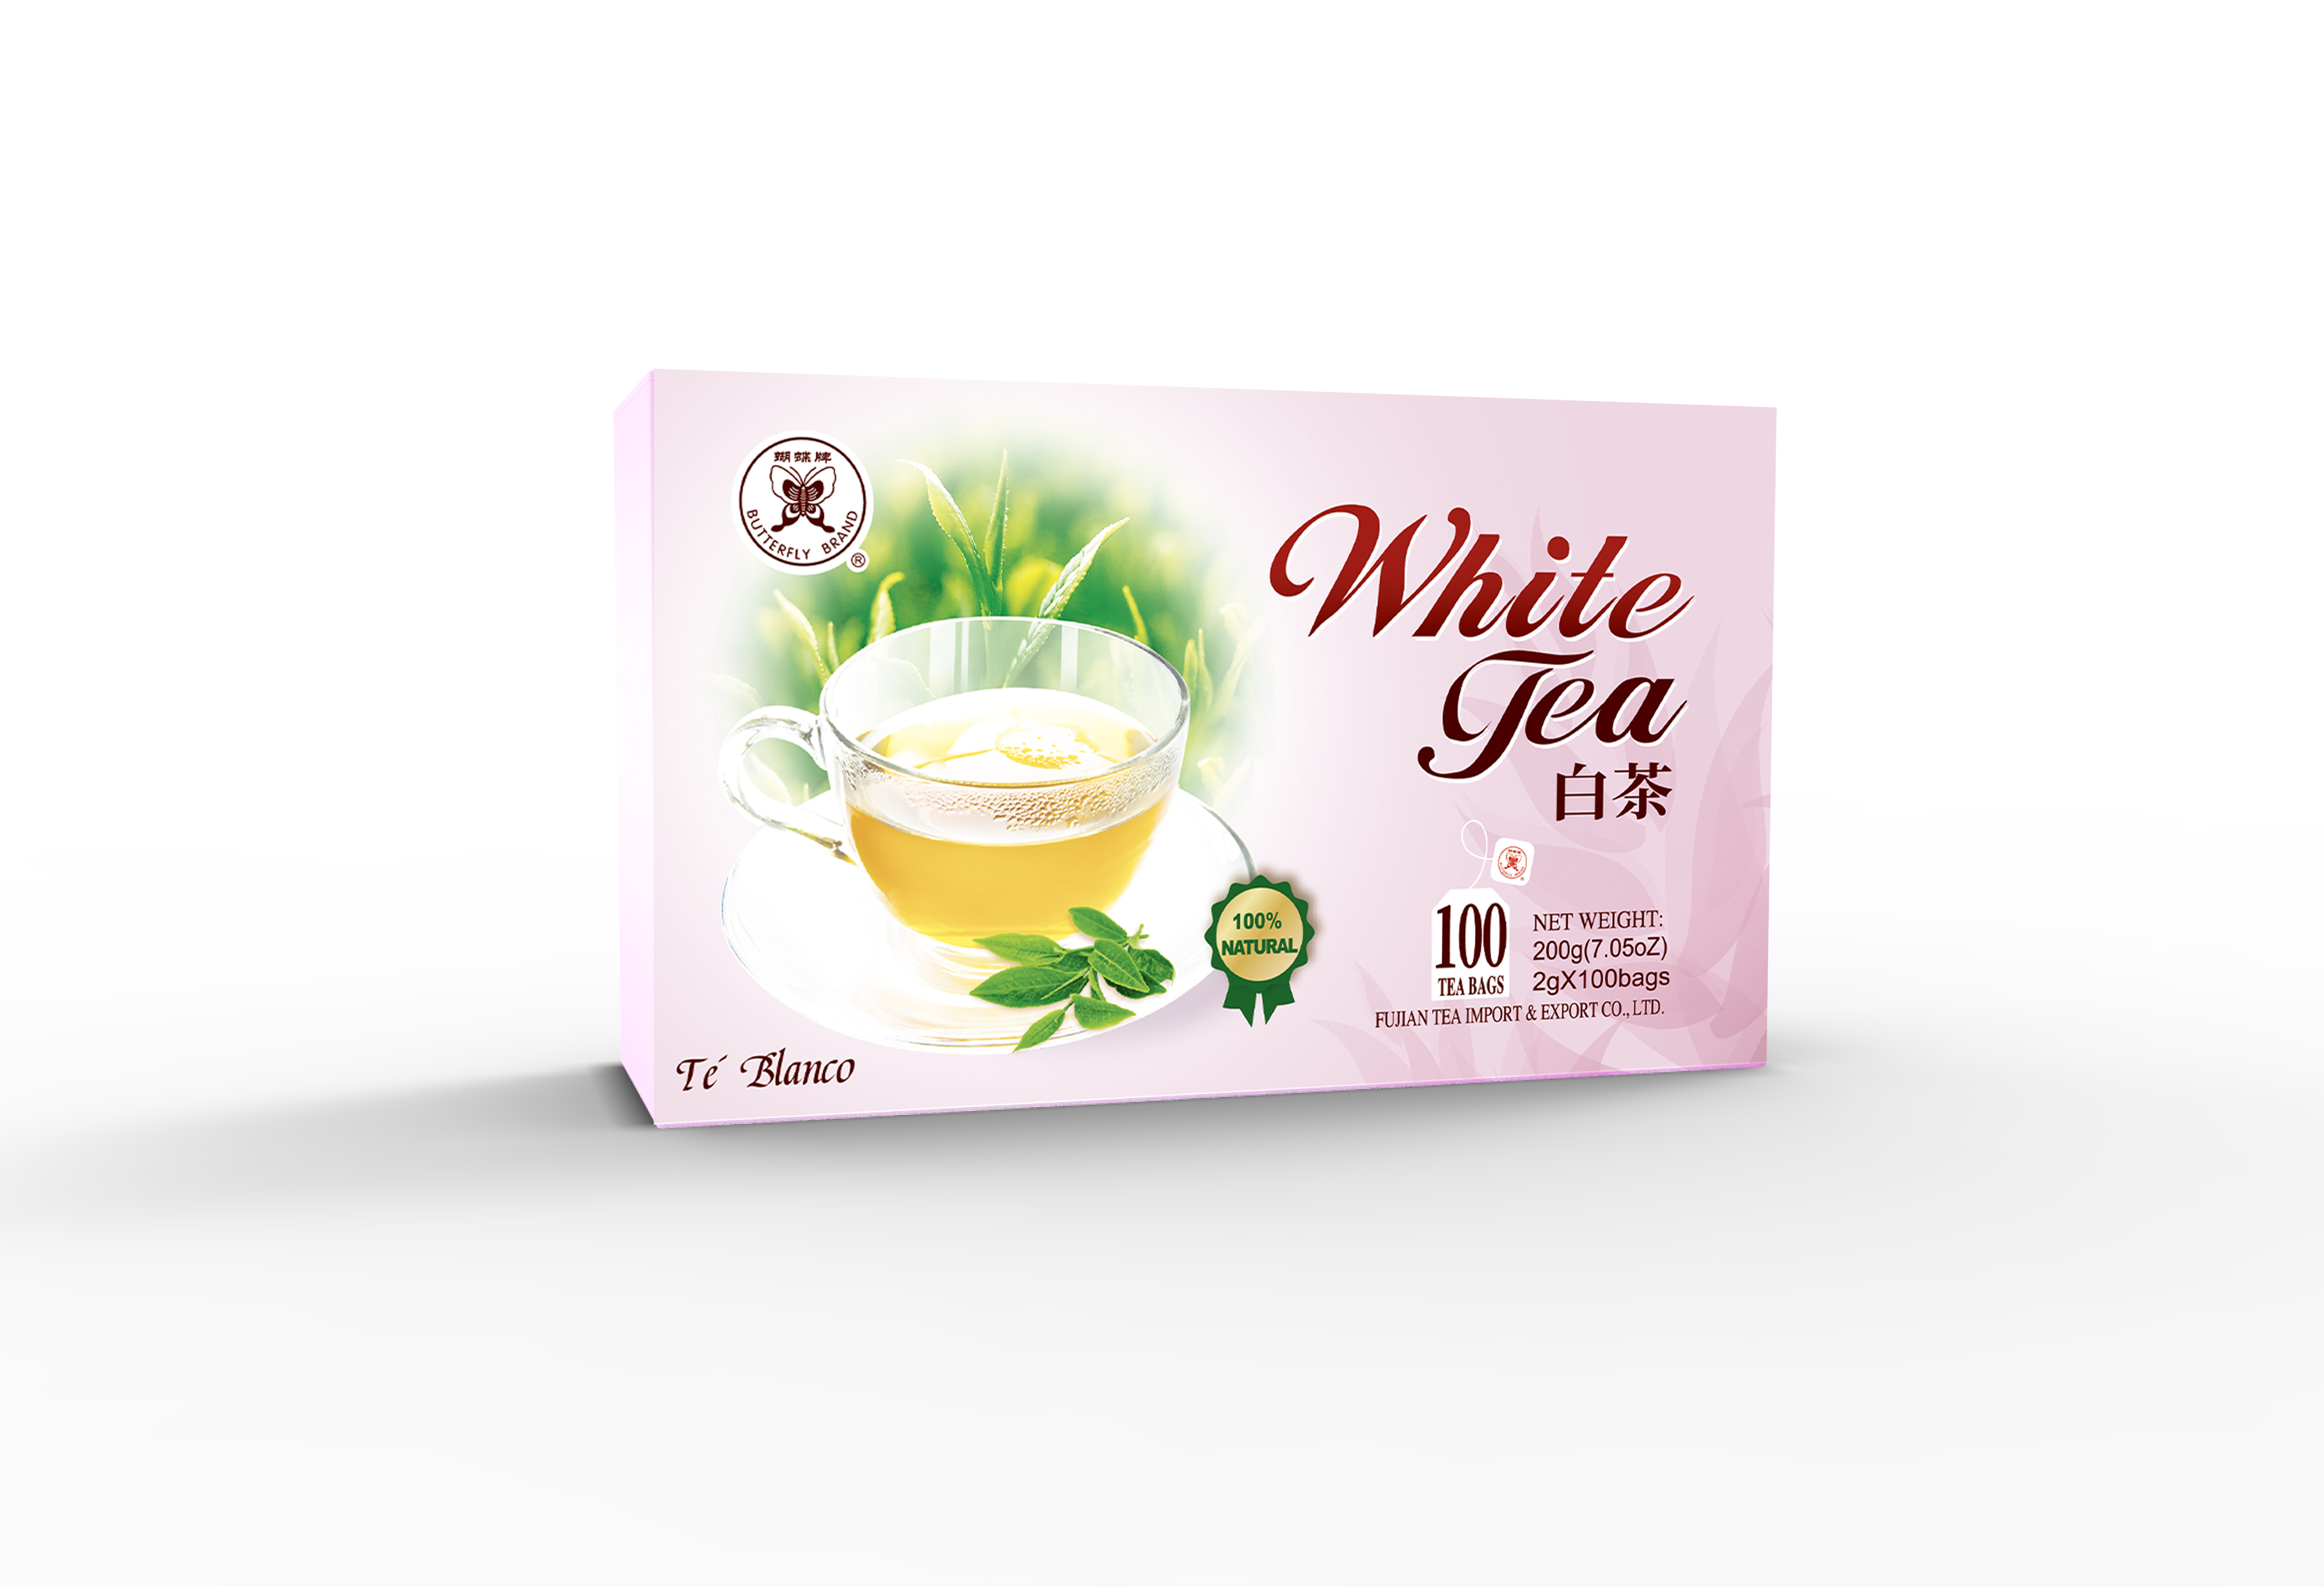 WHITE TEA BAG 2G*100BAGS #WT920